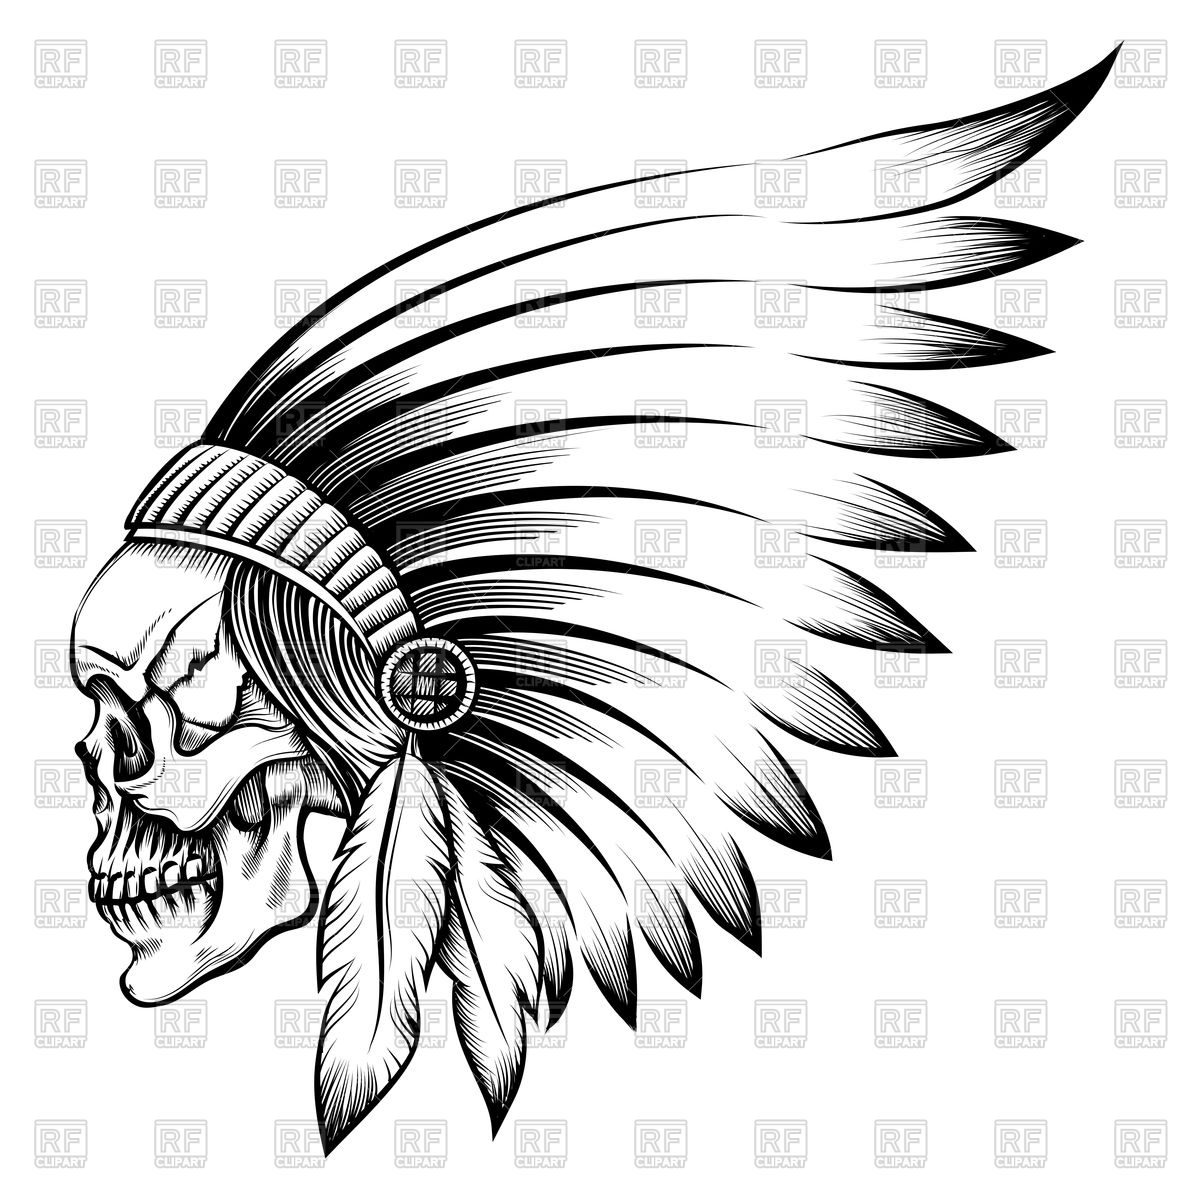 1200x1200 Indian Chief Skull In Engraving Style Royalty Free Vector Clip Art